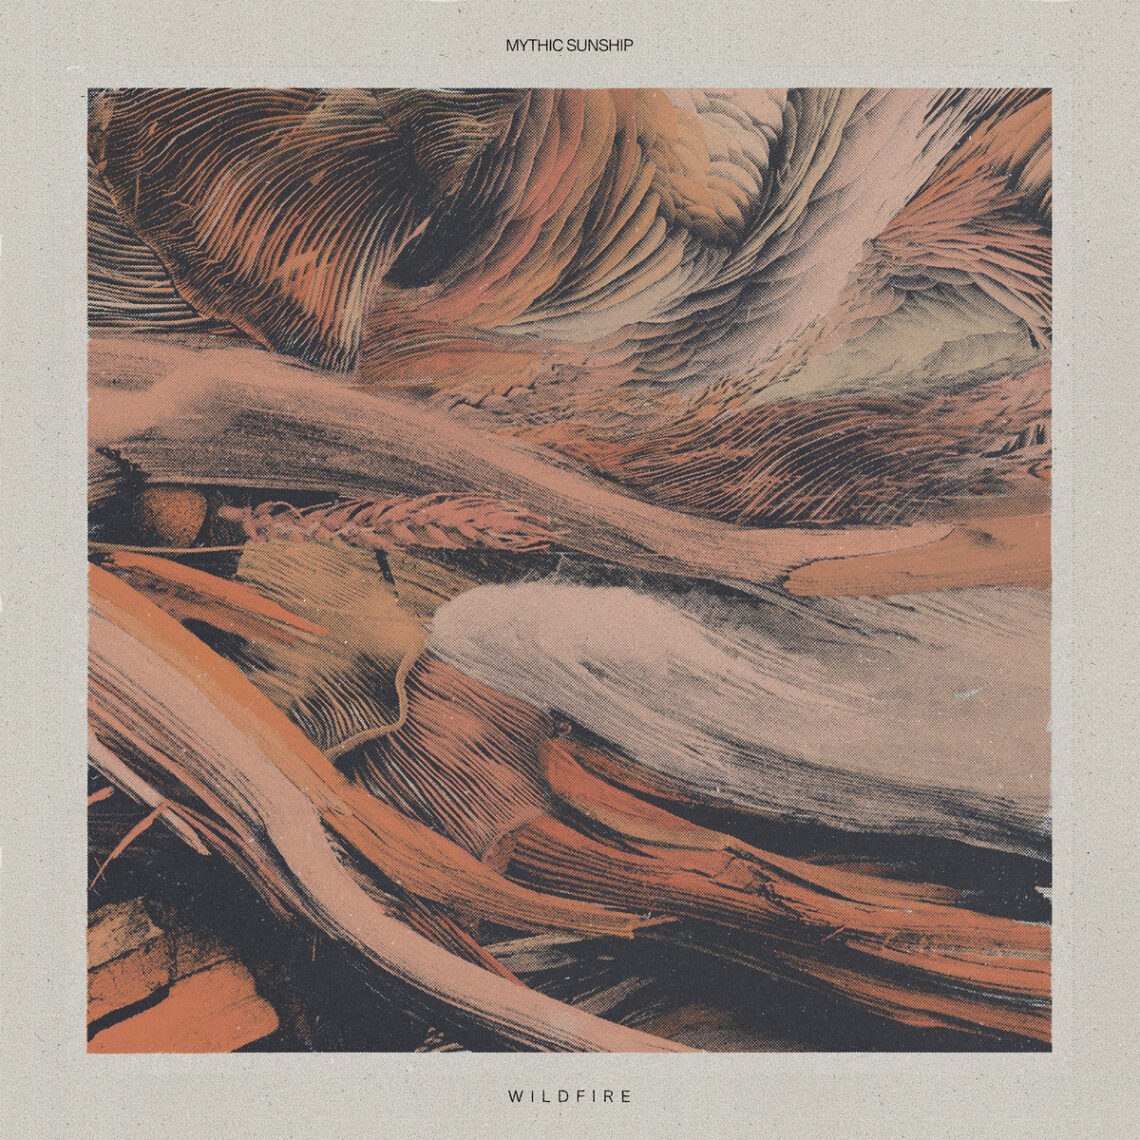 Mythic Sunship – Wildfire Review